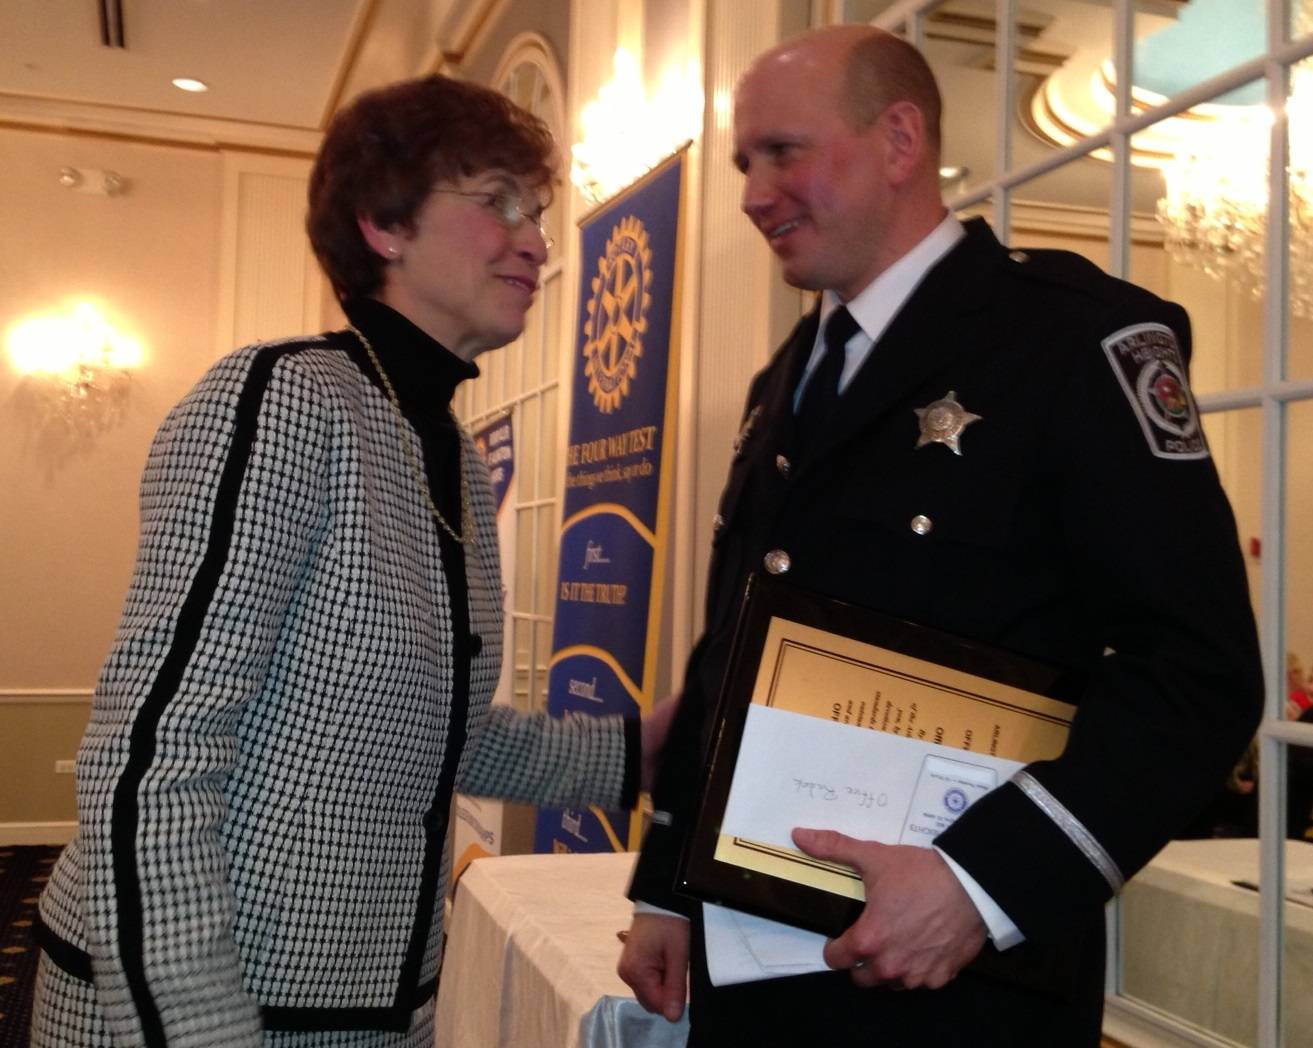 Arlington Heights mayor Arlene Mulder congratulates police officer Todd Radek after presenting him with the L.W. Calderwood Officer of the Year Award.